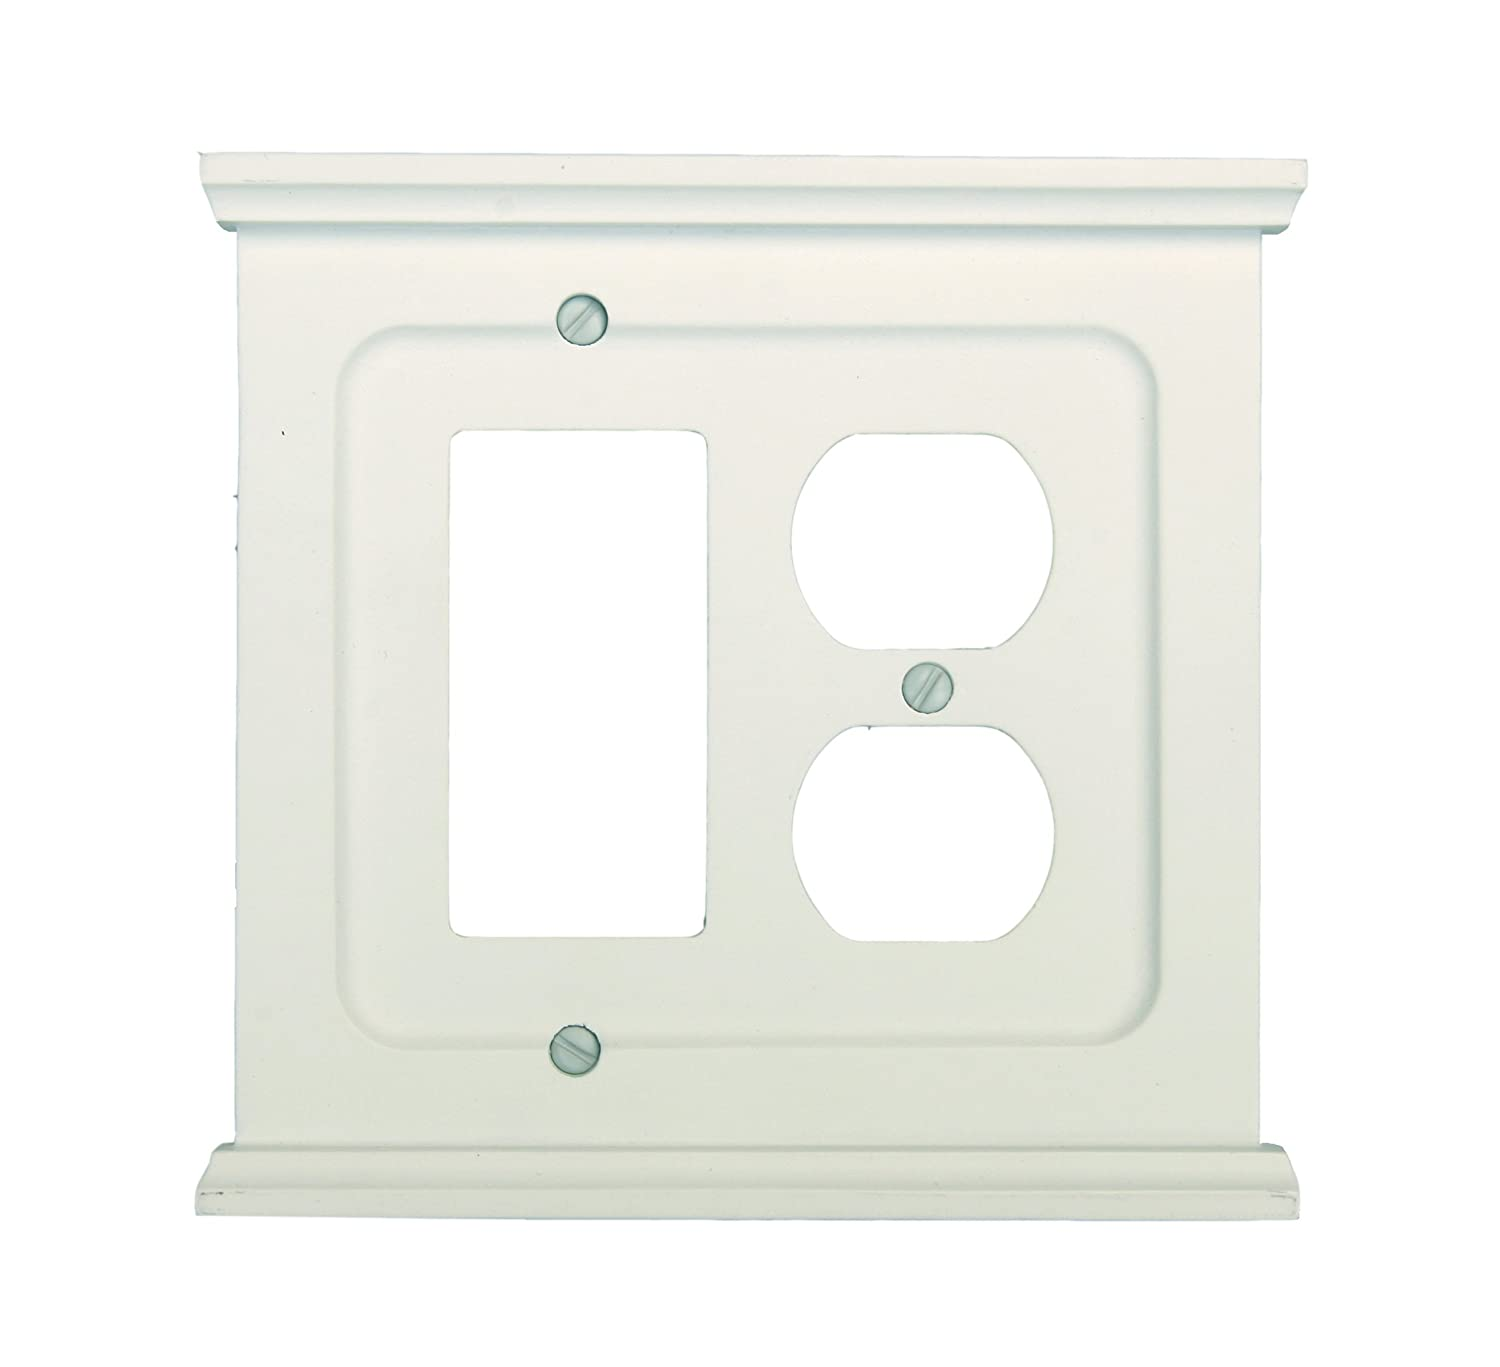 Amerelle 178dw Mantel Composite Wood Wall Plate White Plates Light Switchplates Outlet Covers Switch Wallplates